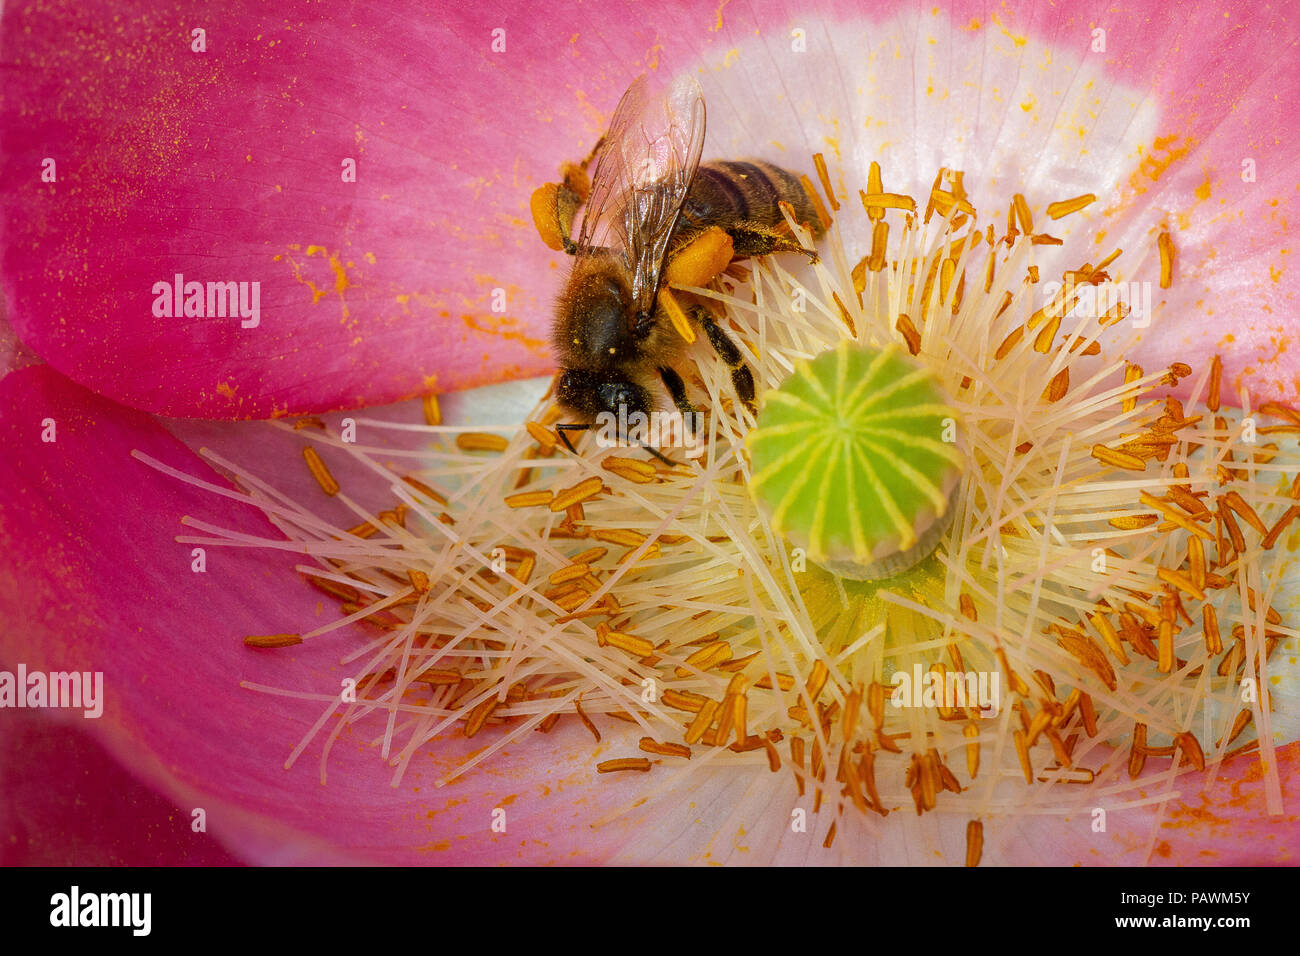 Bee gathering pollen in a pink and white poppy flower - Stock Image